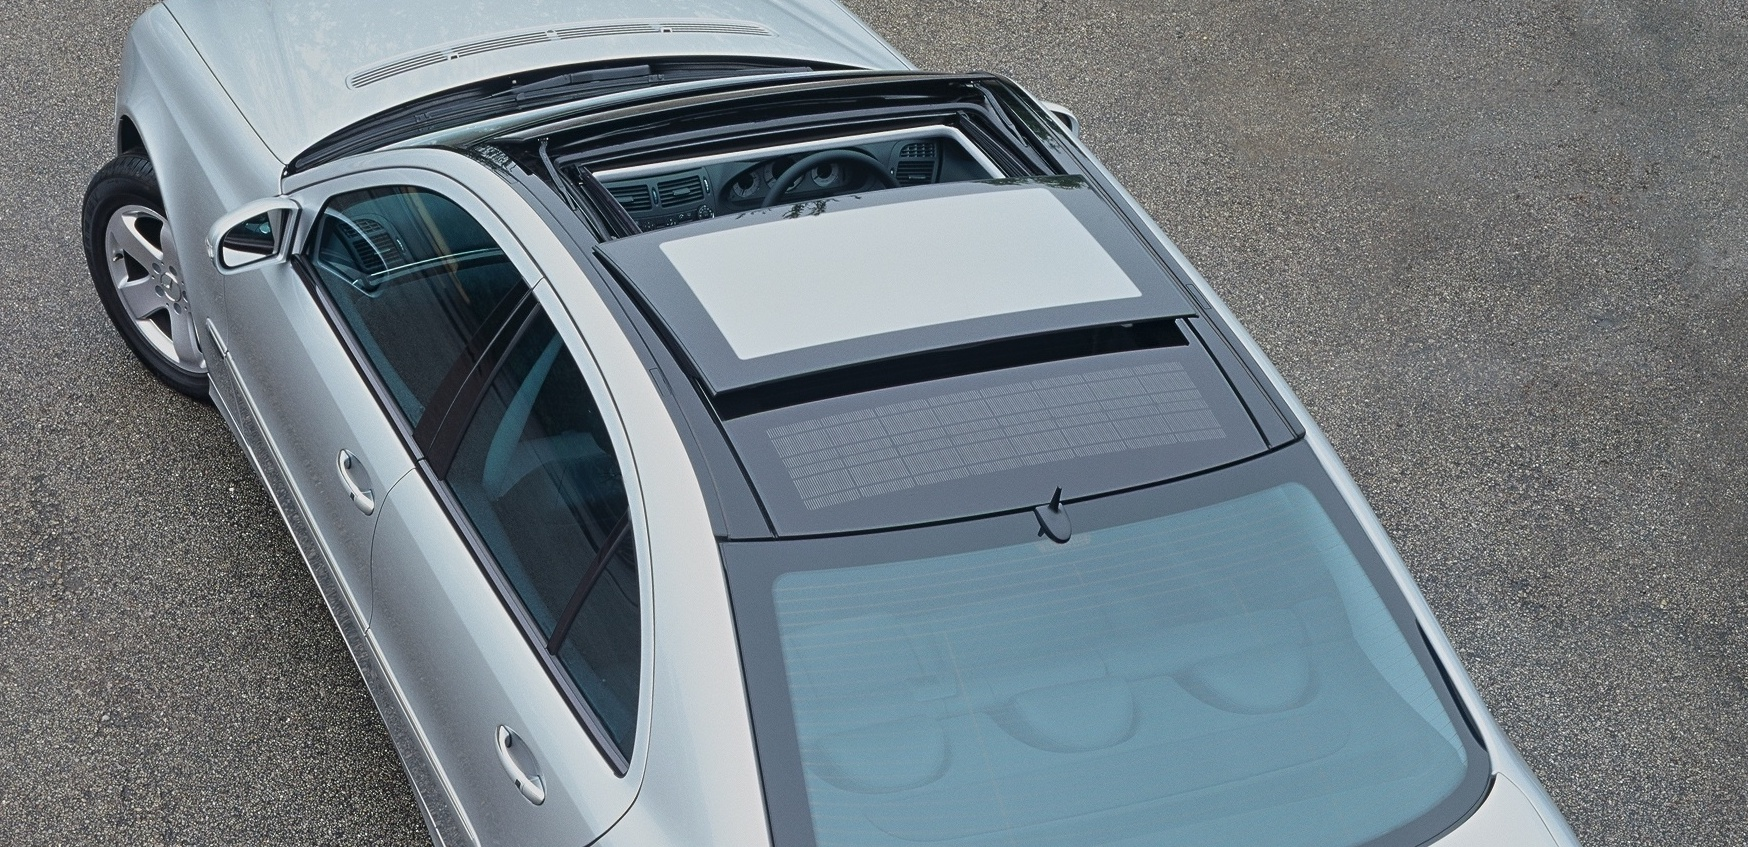 A panoramic sunroof can eat into headroom